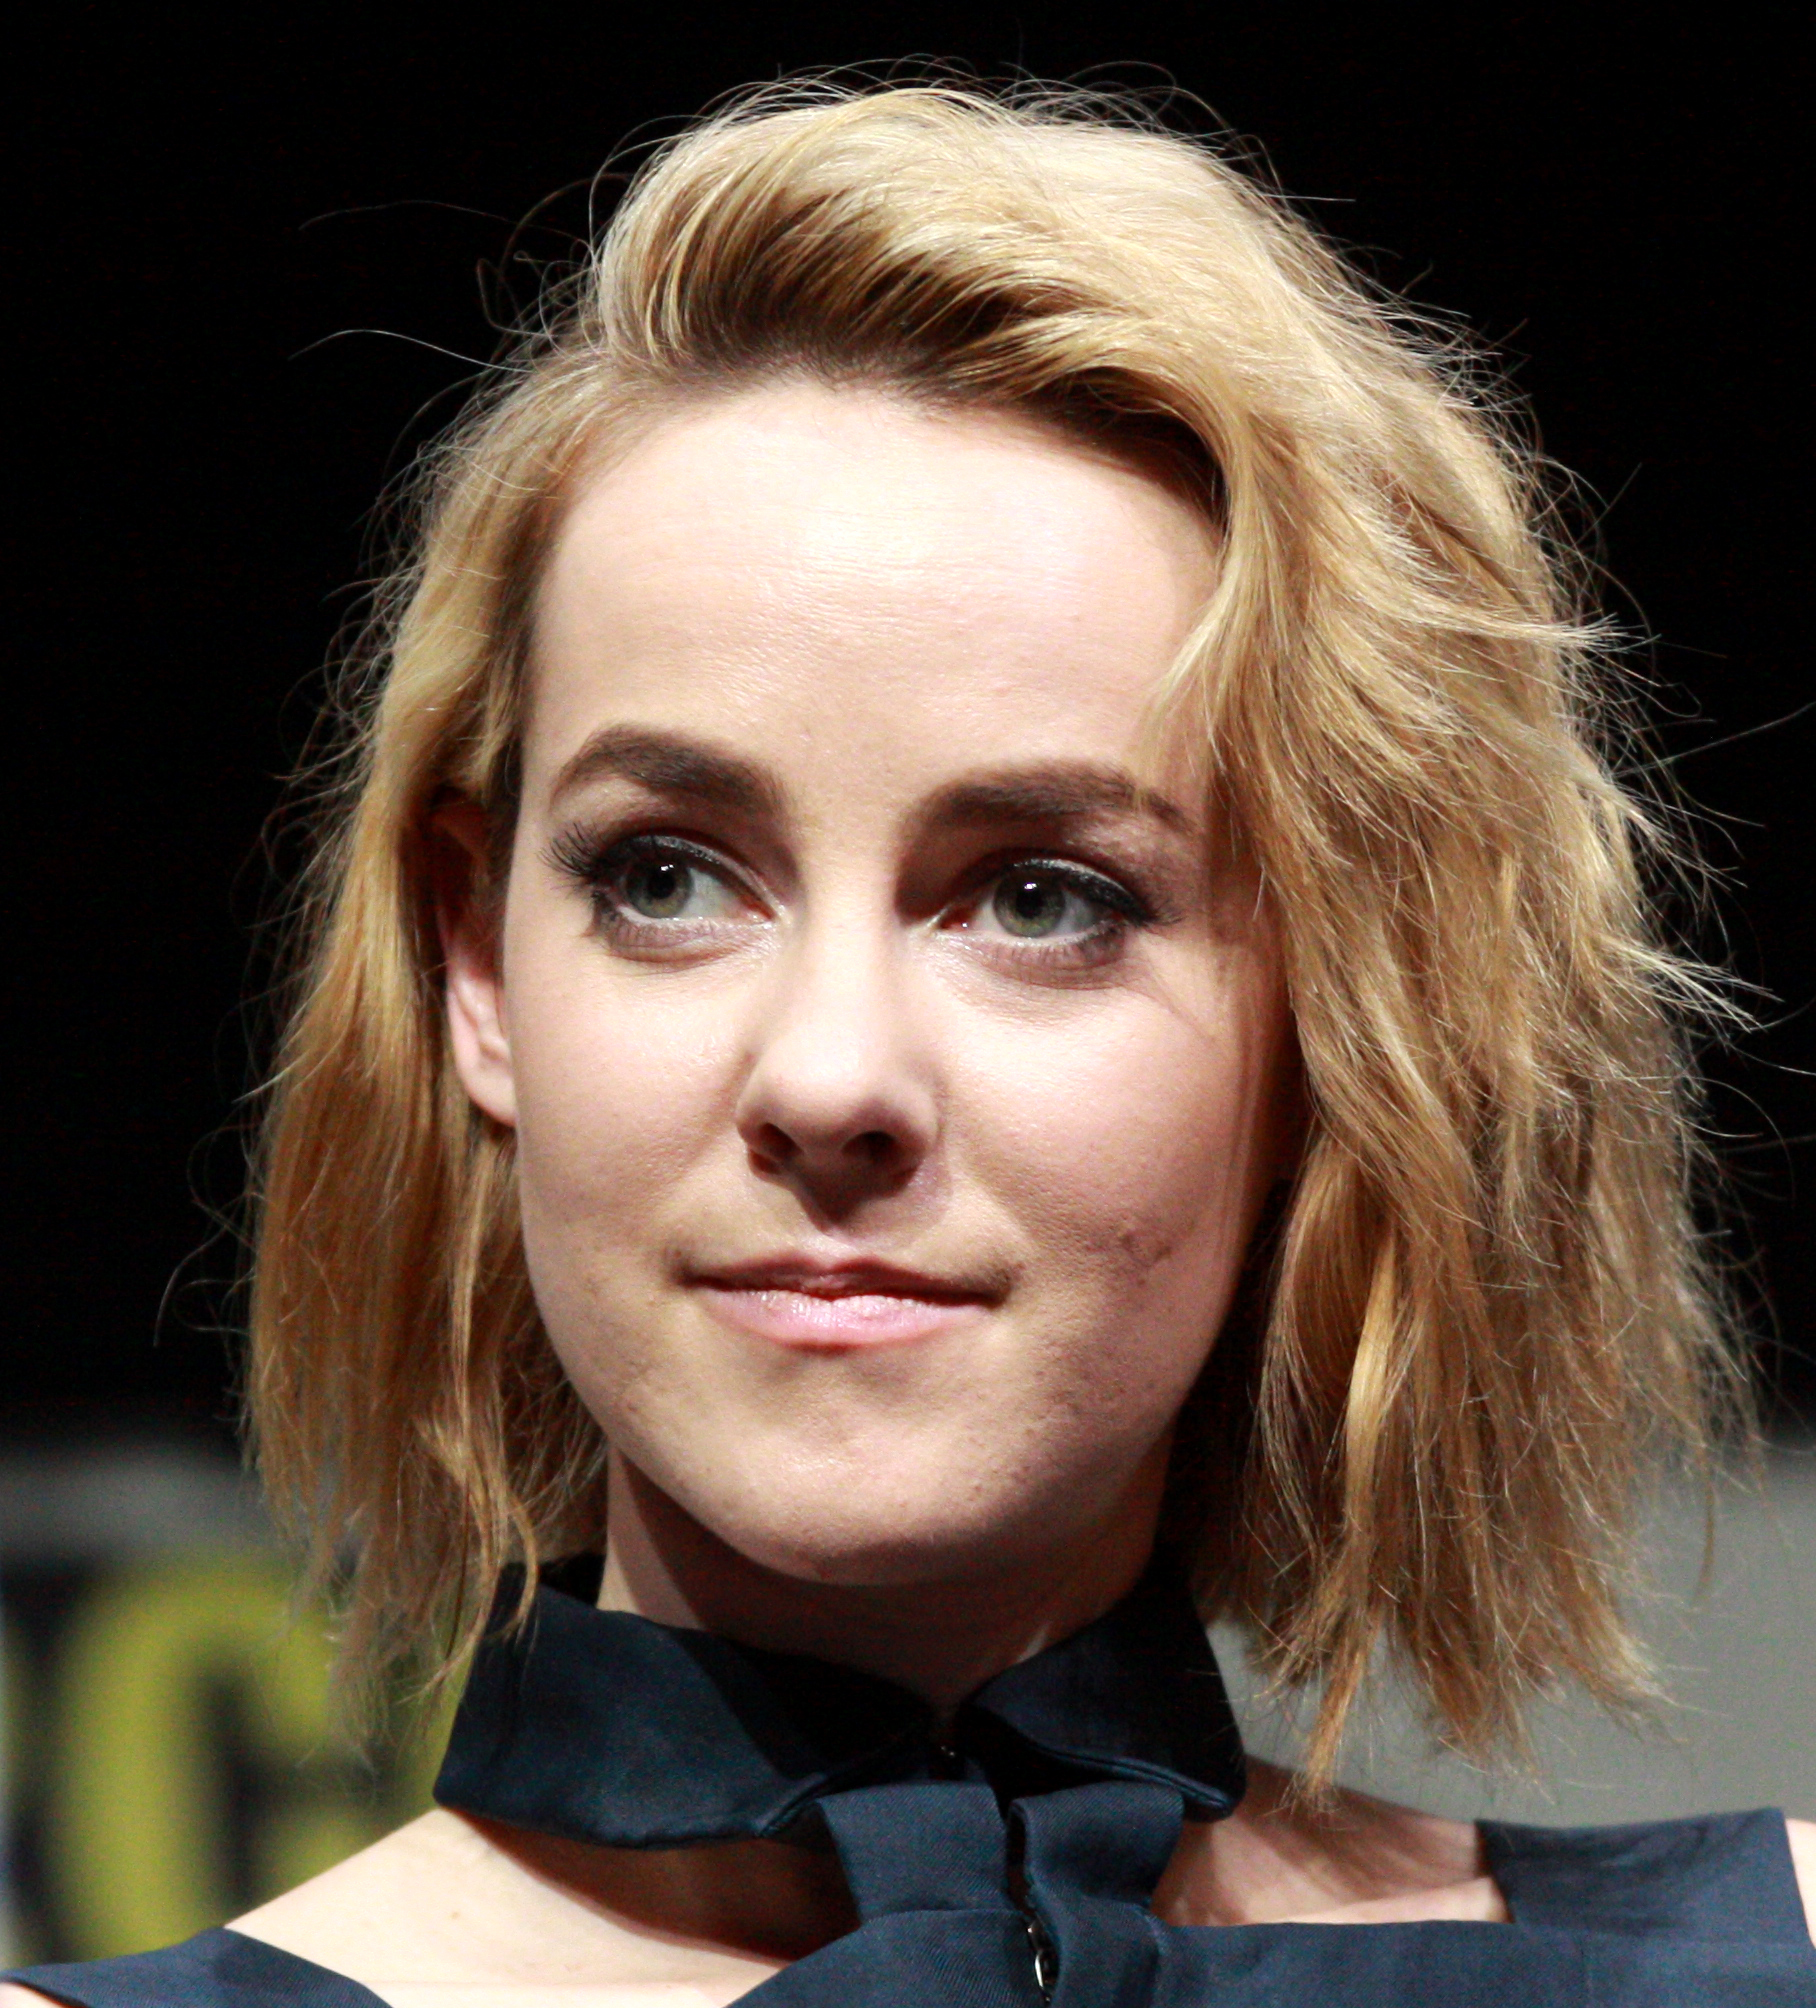 Jena Malone earned a  million dollar salary, leaving the net worth at 4 million in 2017